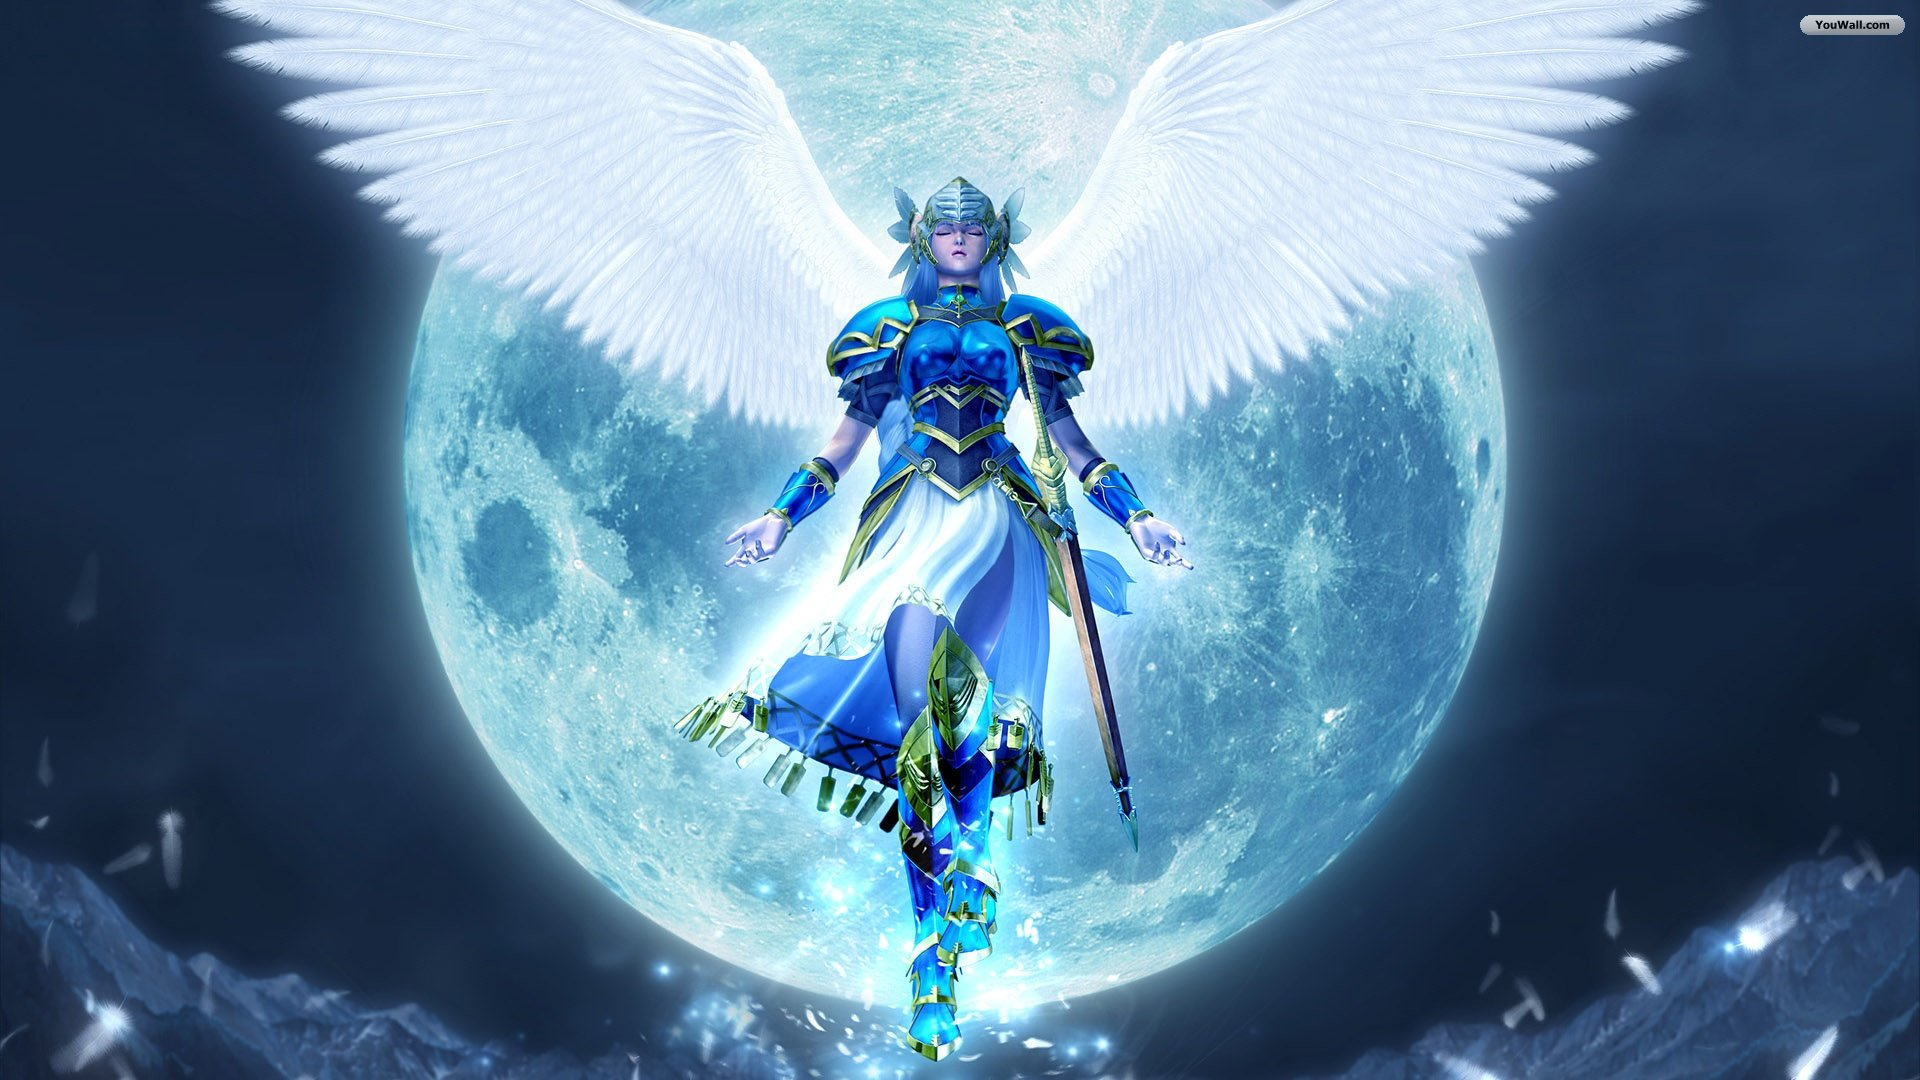 Fantasy wallpapers for desktop and mobile devices - Fantasy wallpaper anime ...